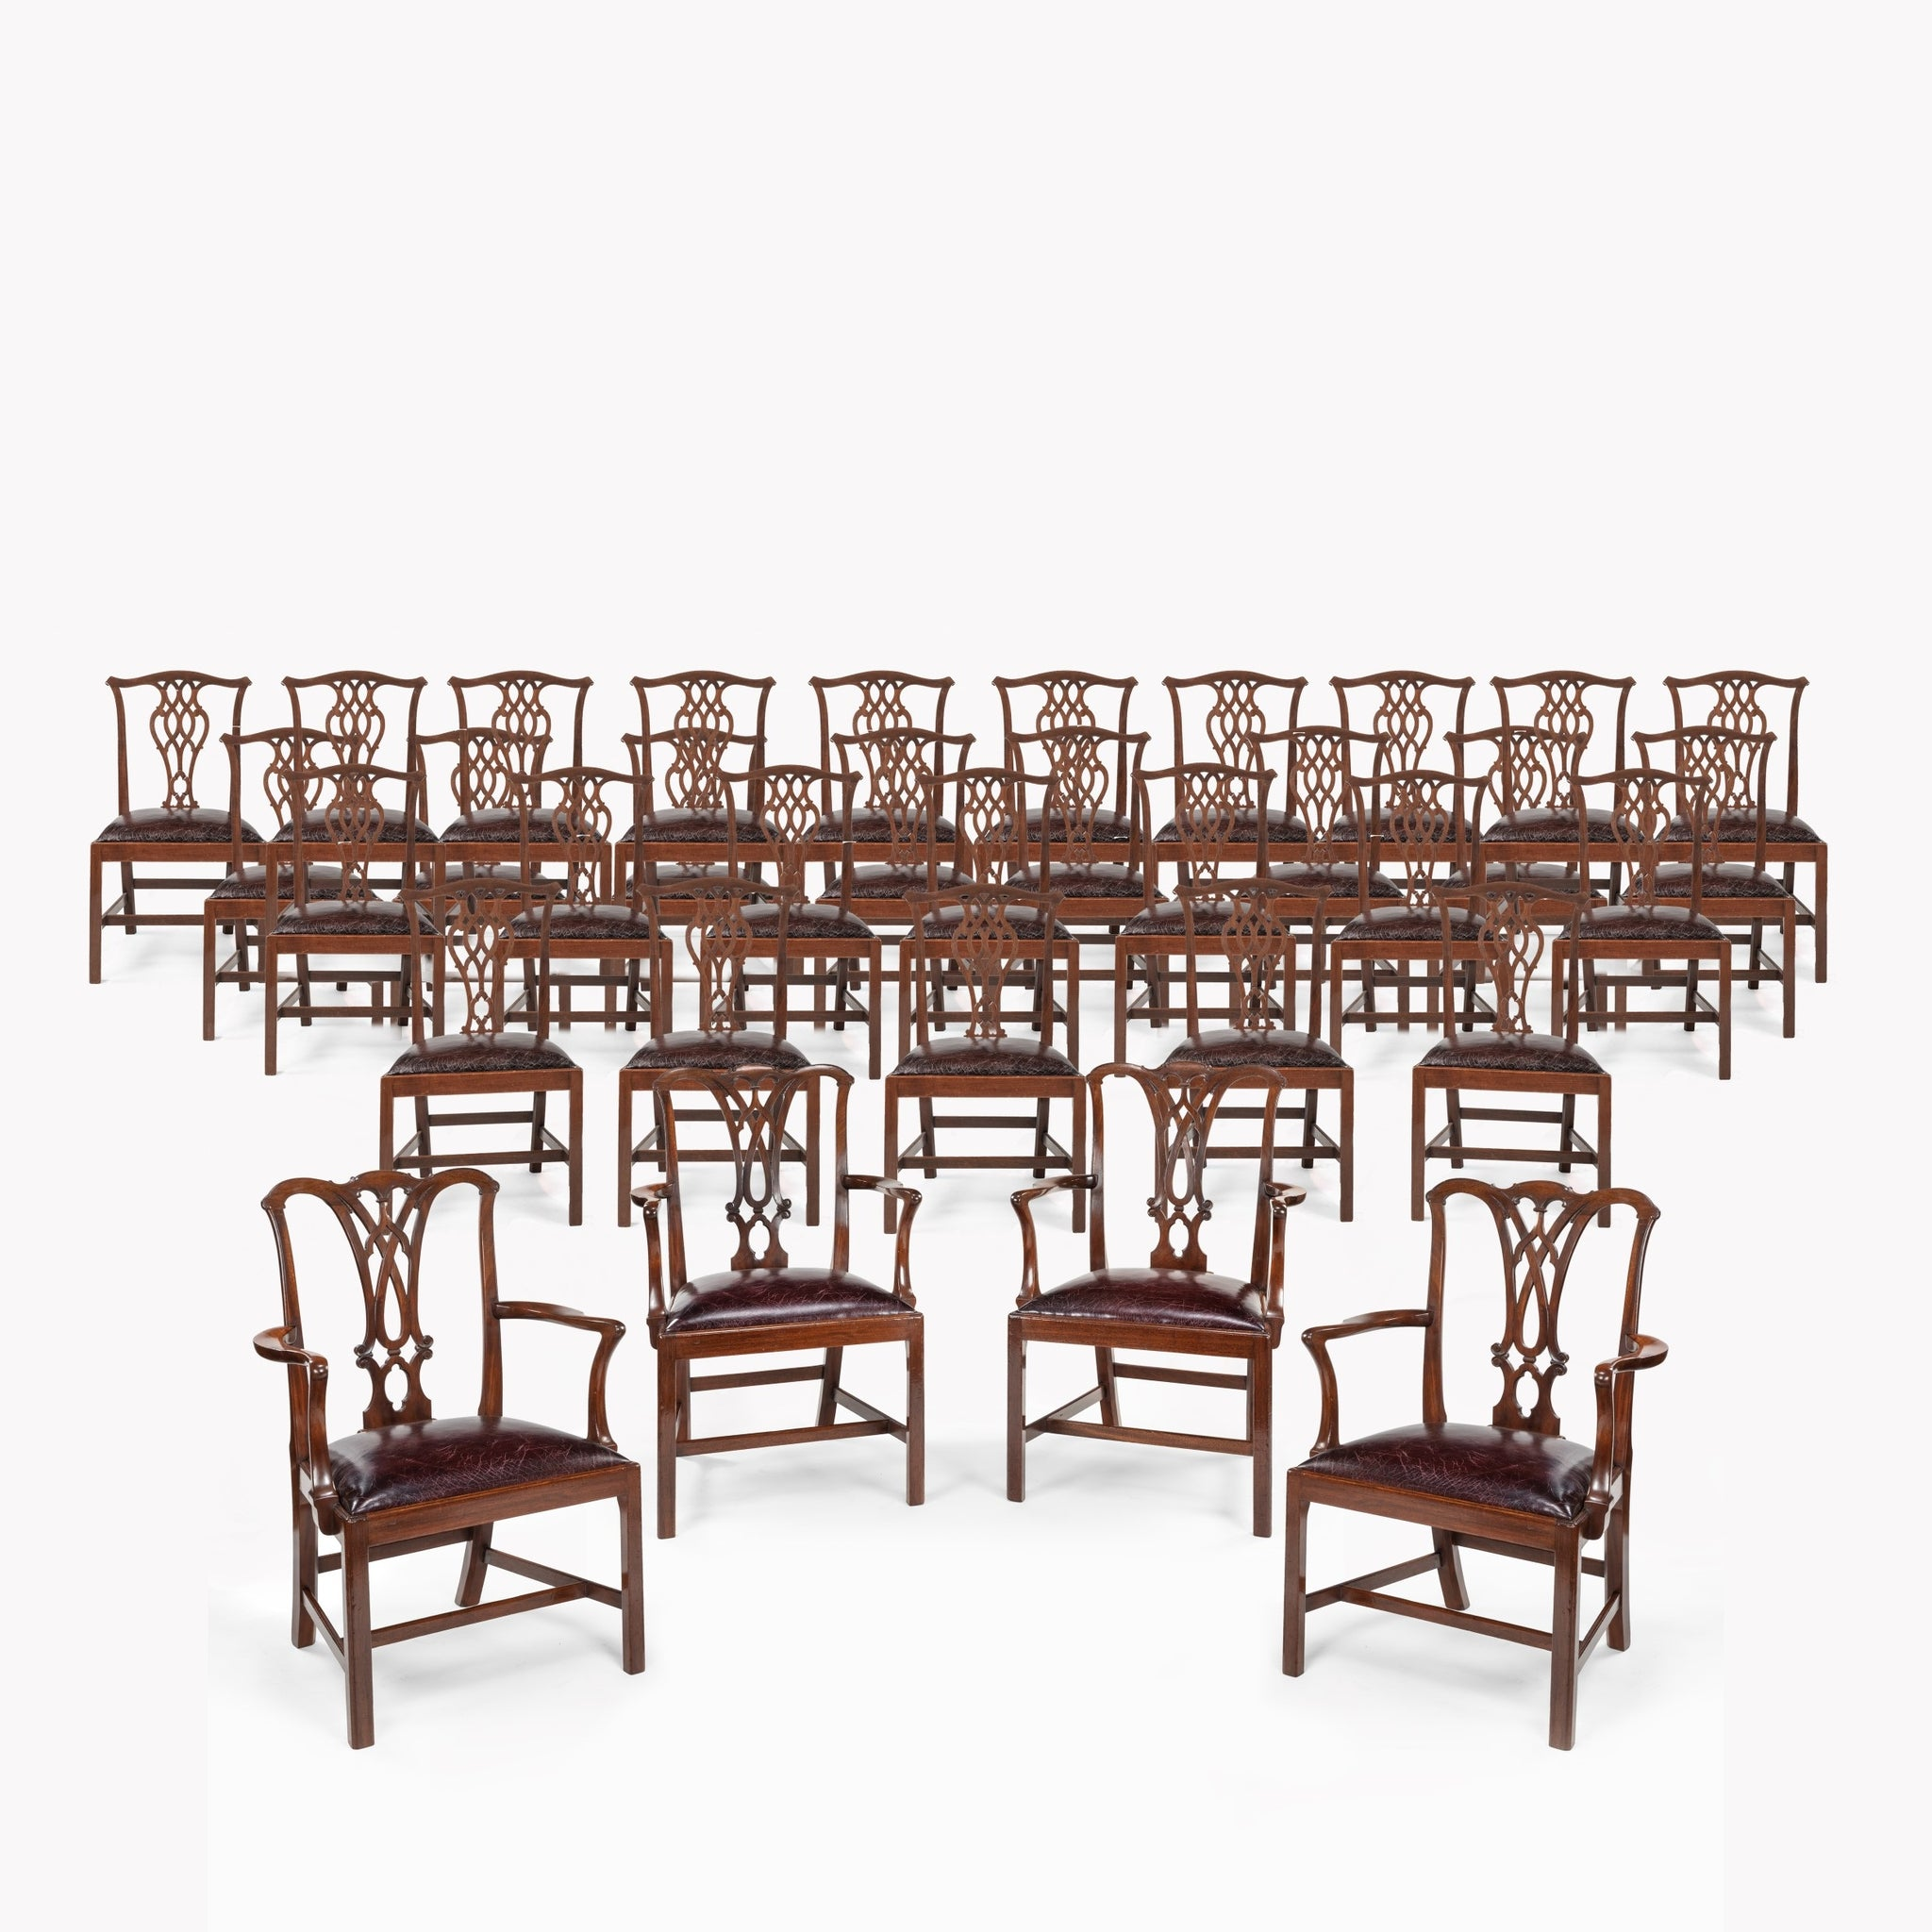 An Extensive Set of 34 Mahogany Chairs by Charles Baker